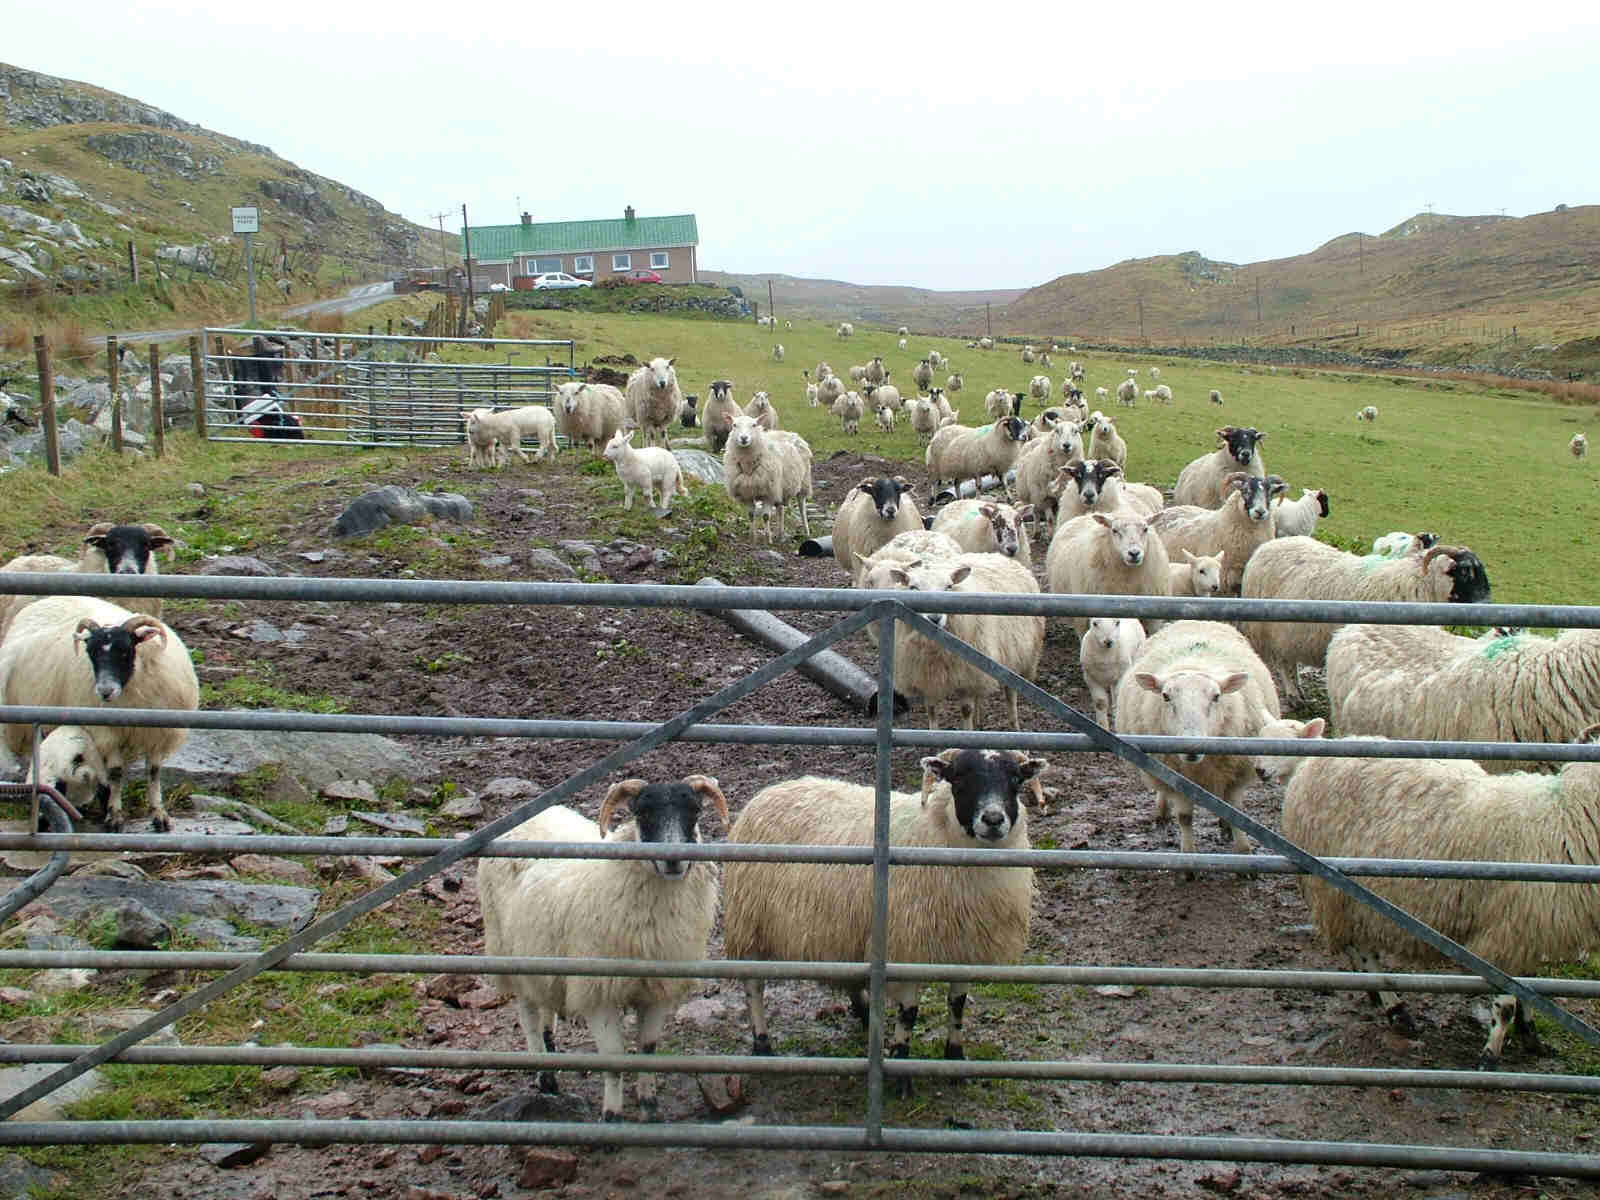 Sheep at Dalbeg